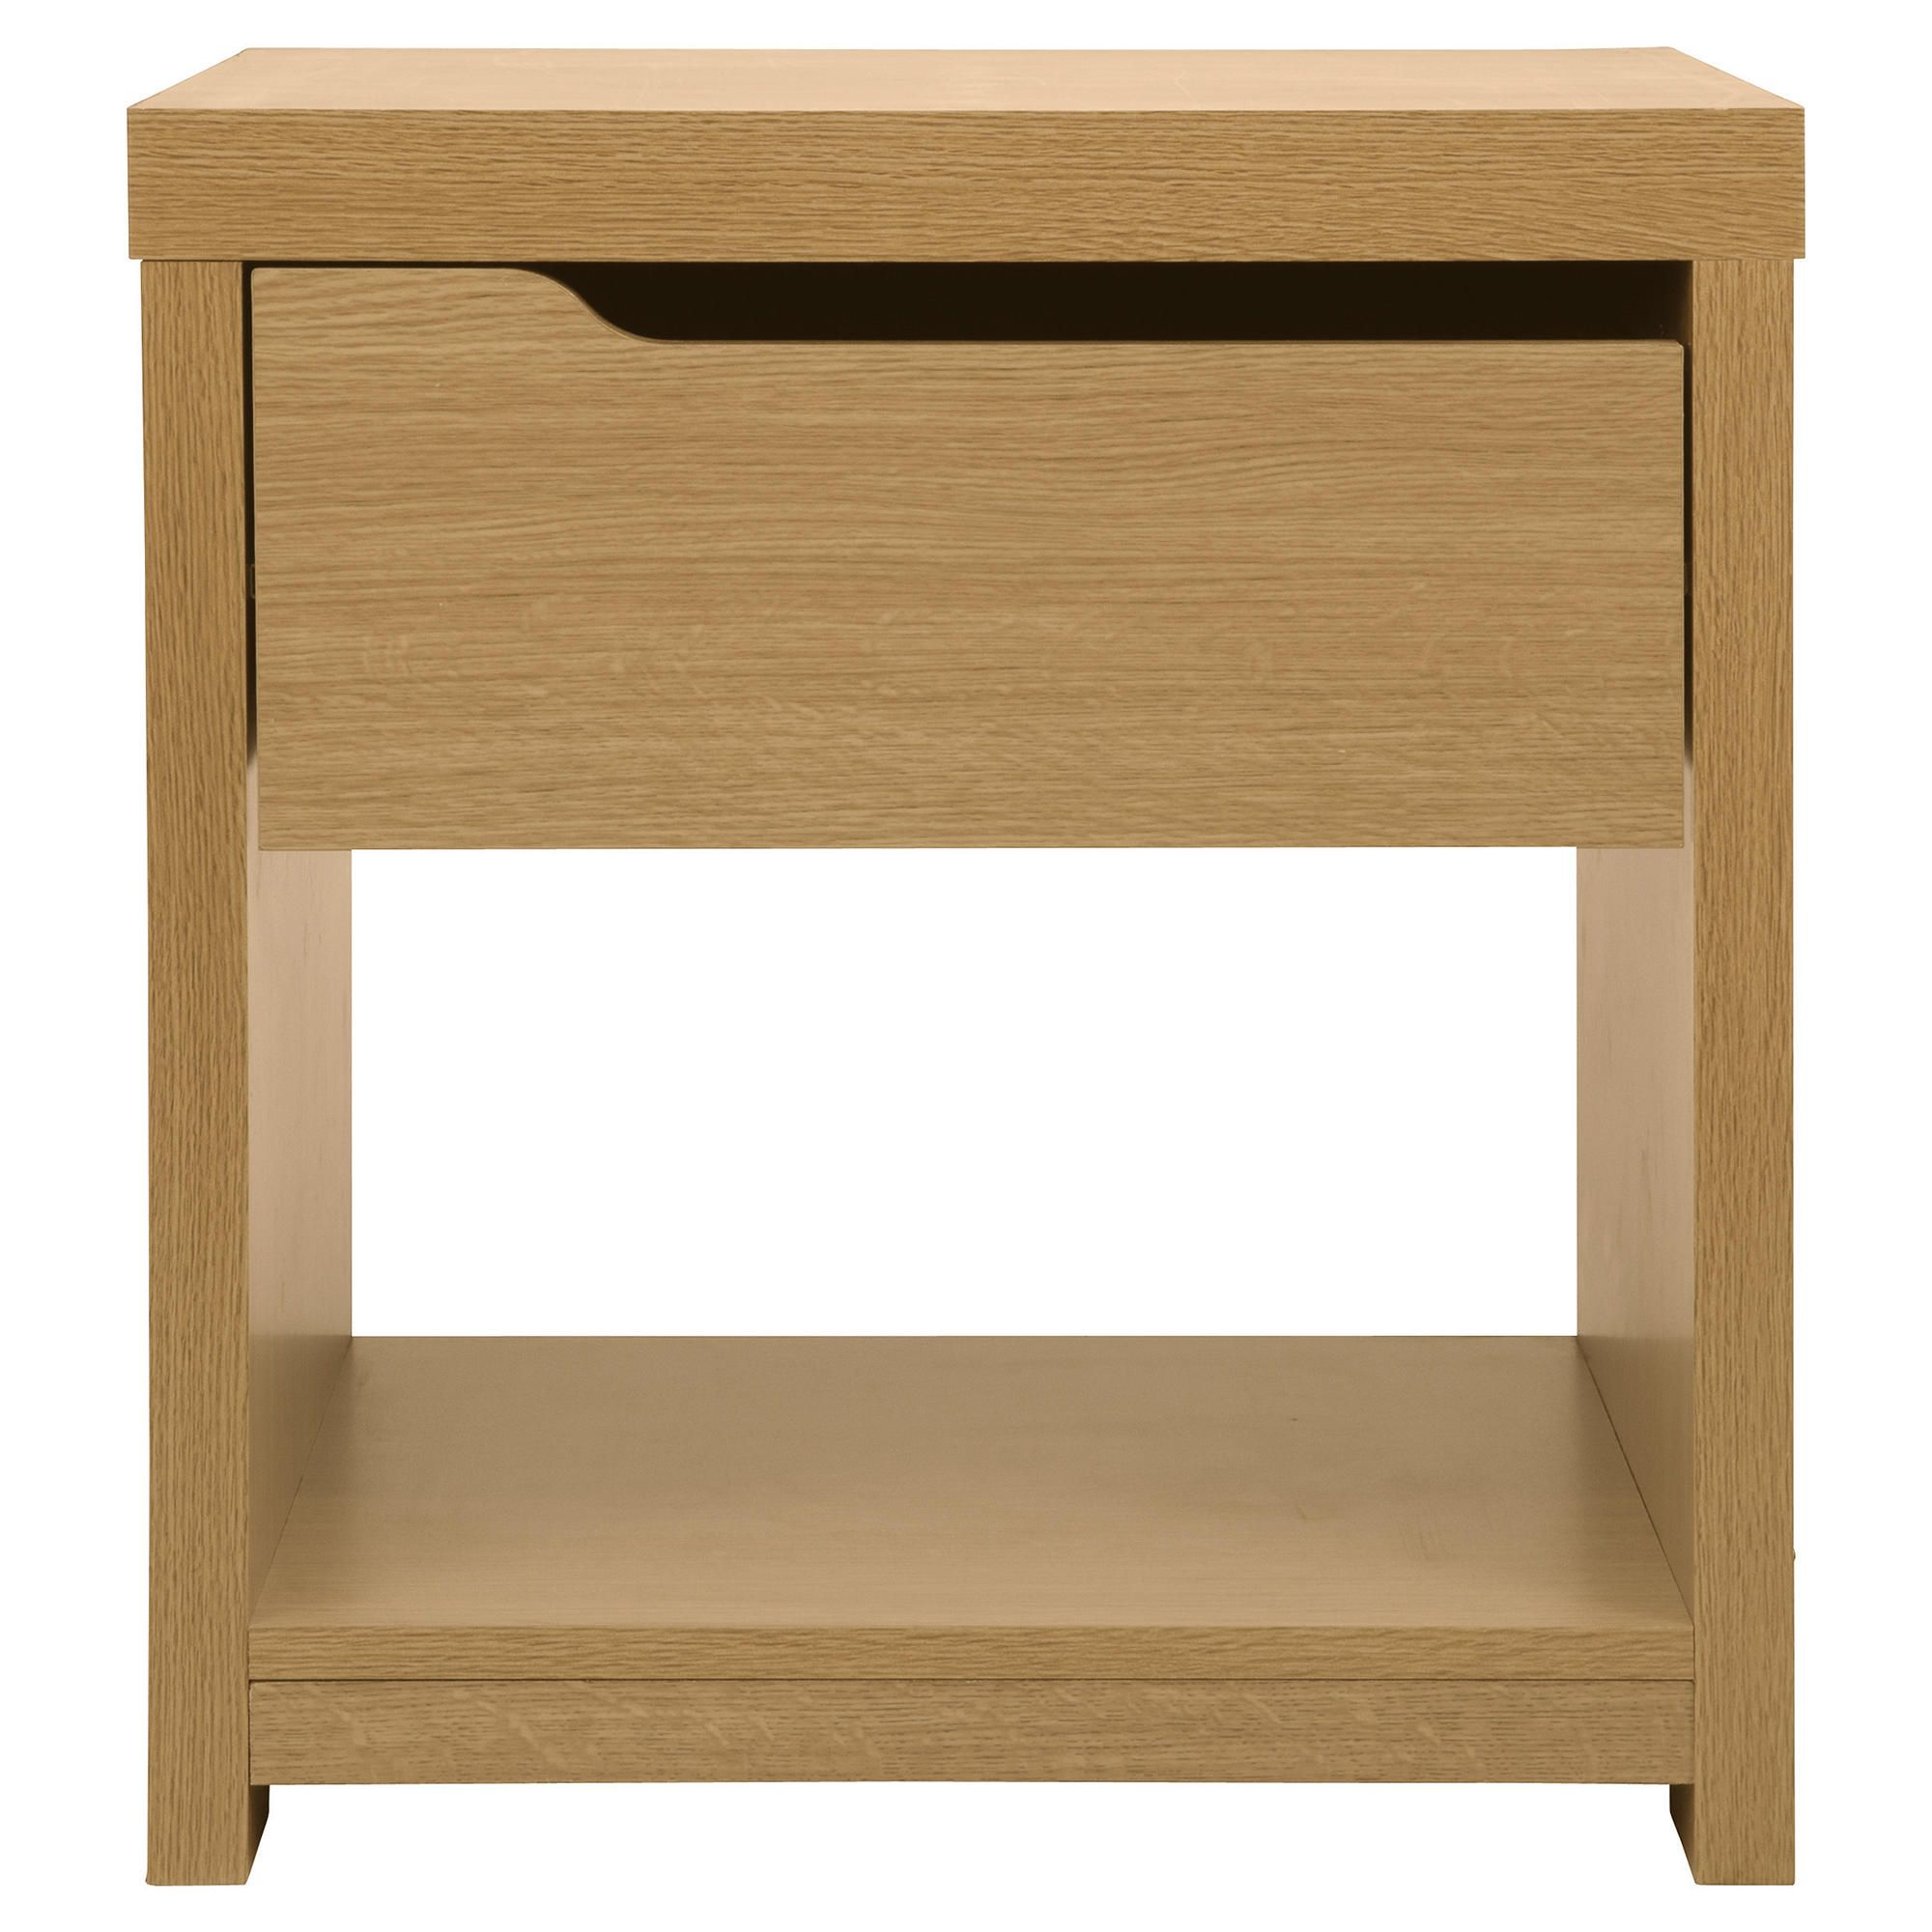 Tesco Seattle Side Table, Oak-effect